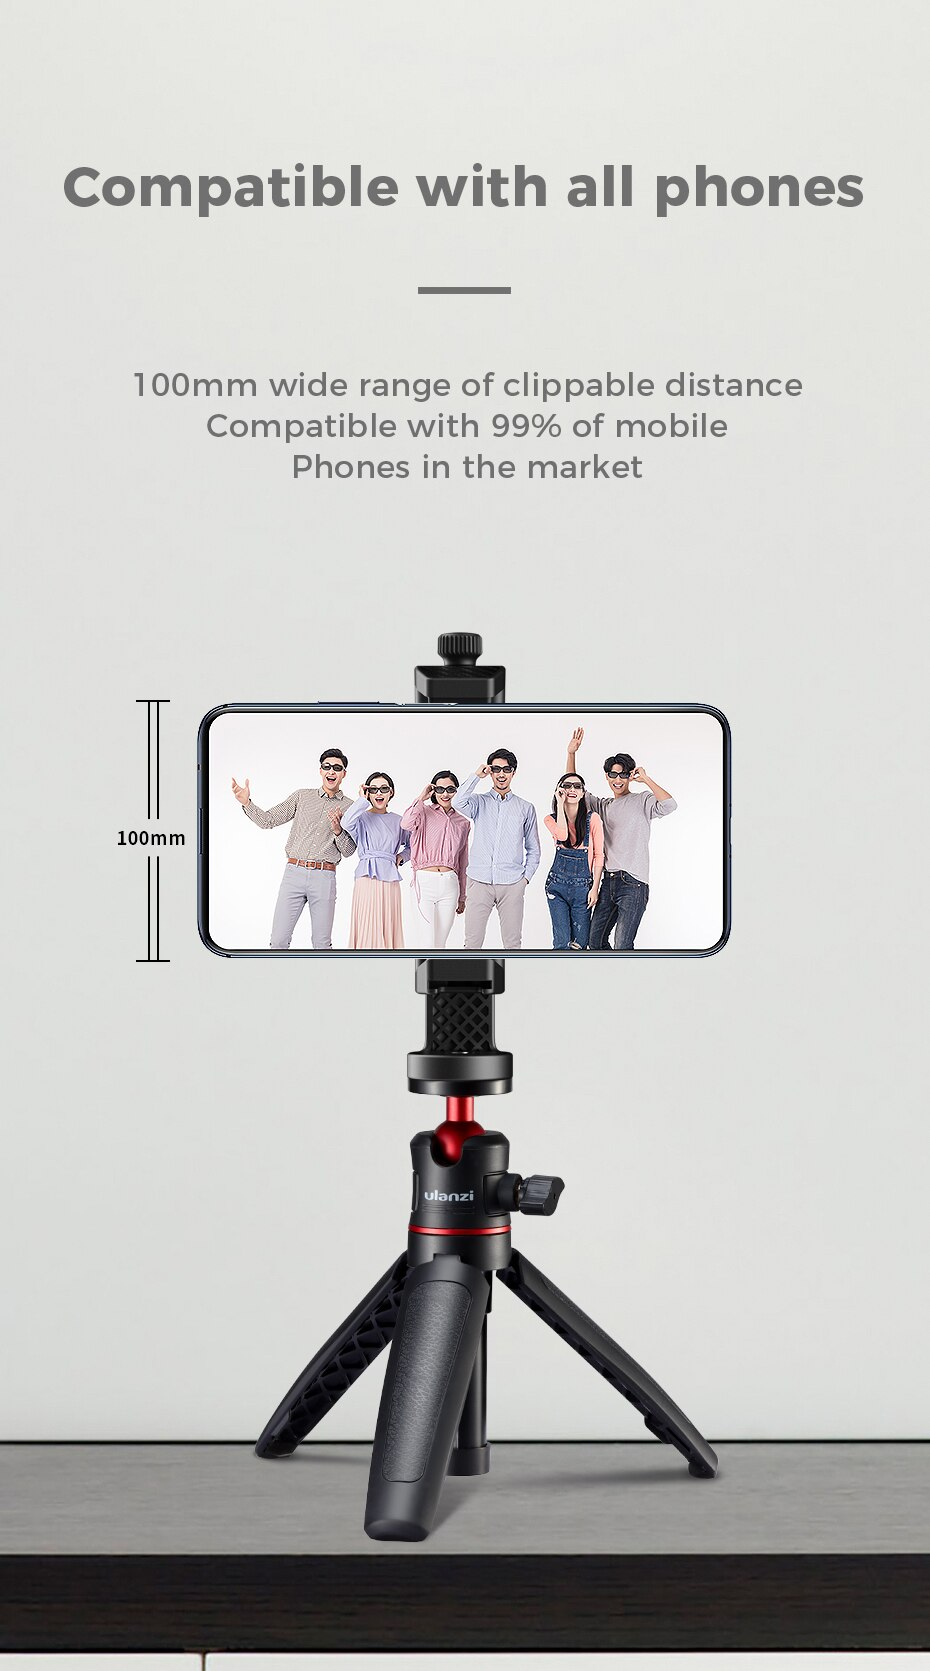 Hdc0906ccb5d94e13b86a1ab44468e099i - Ulanzi ST-17 Universal Smartphone Clip Mount Holder Cold Shoe Vlog Tripod Mount Vertical Shooting for Huawei iPhone Android